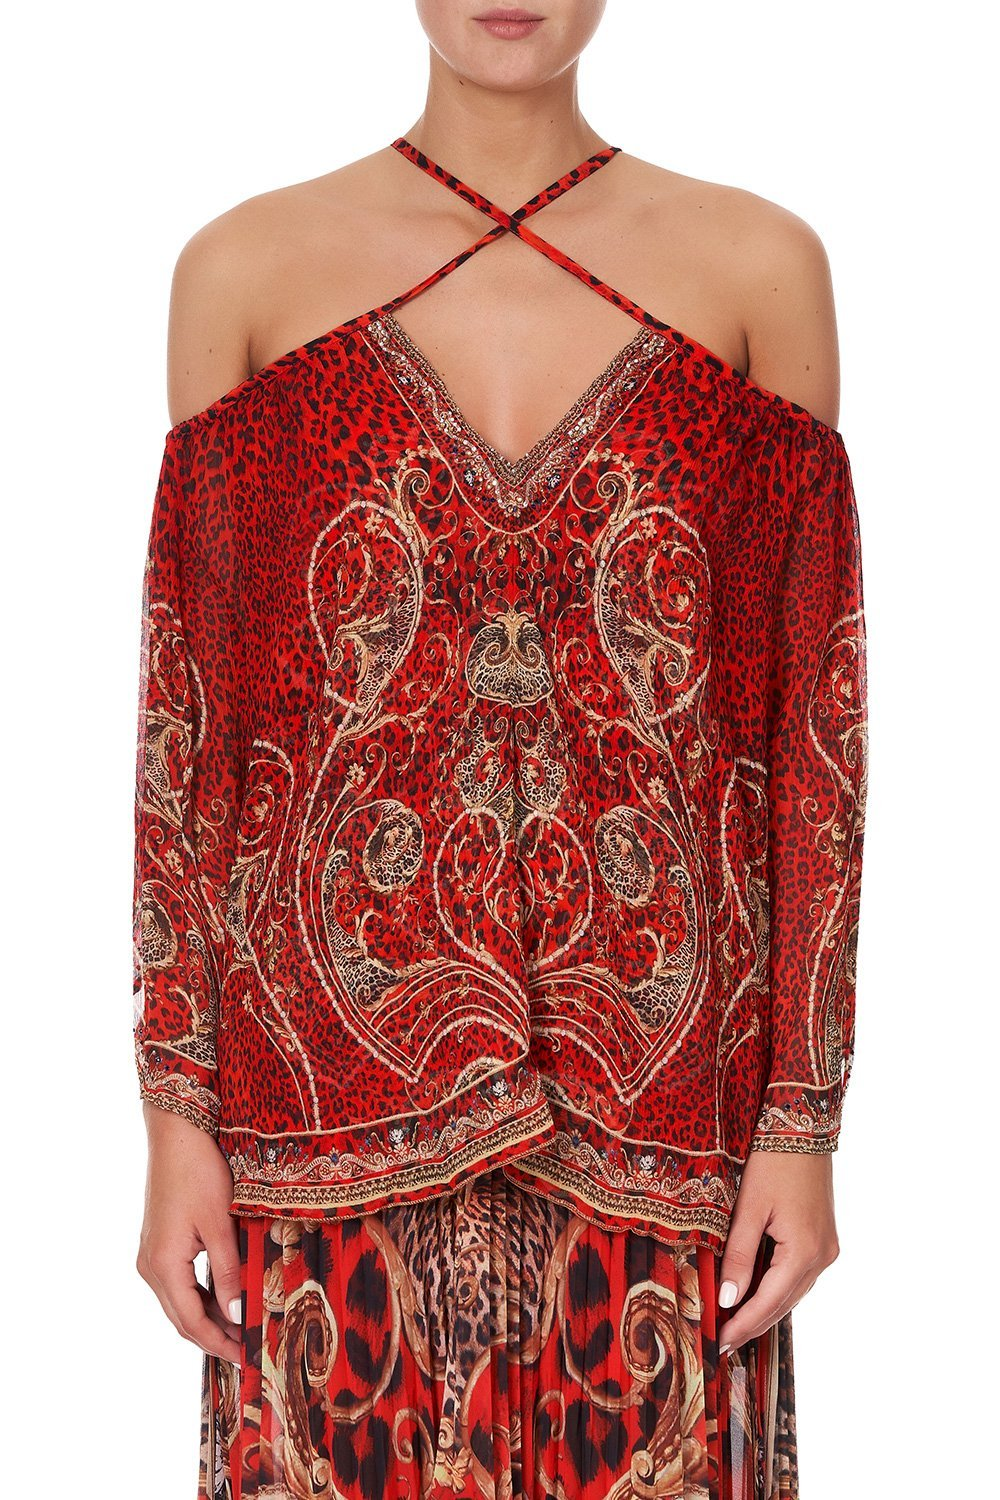 KEYHOLE OFF SHOULDER BLOUSE SLAVE TO THE RHYTHM